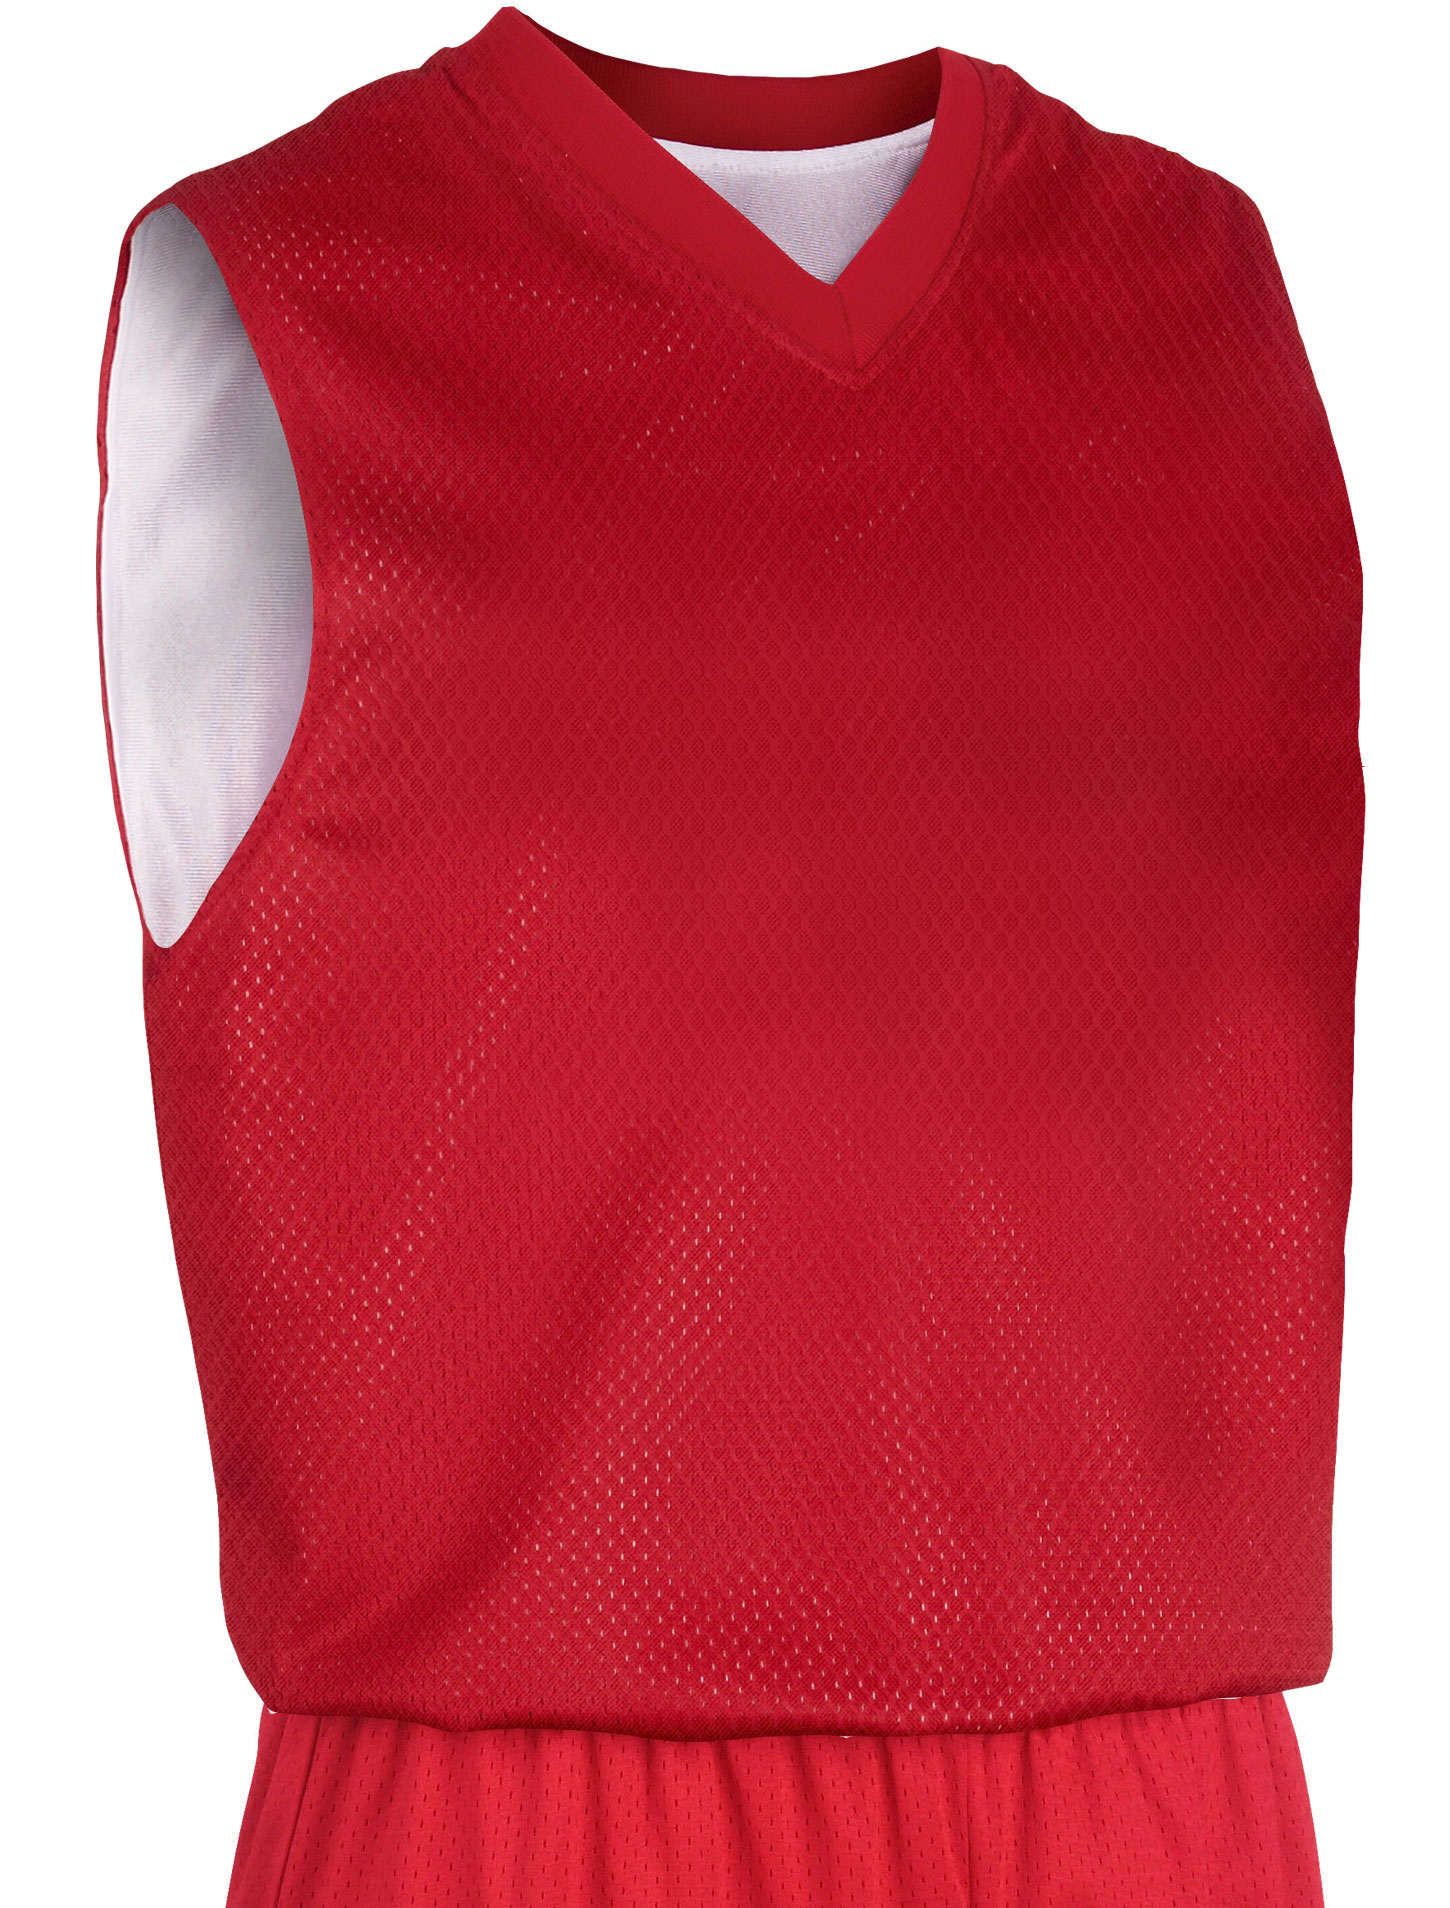 Teamwork Adult Fadeaway Reversible Basketball Jersey - CLOSEOUT